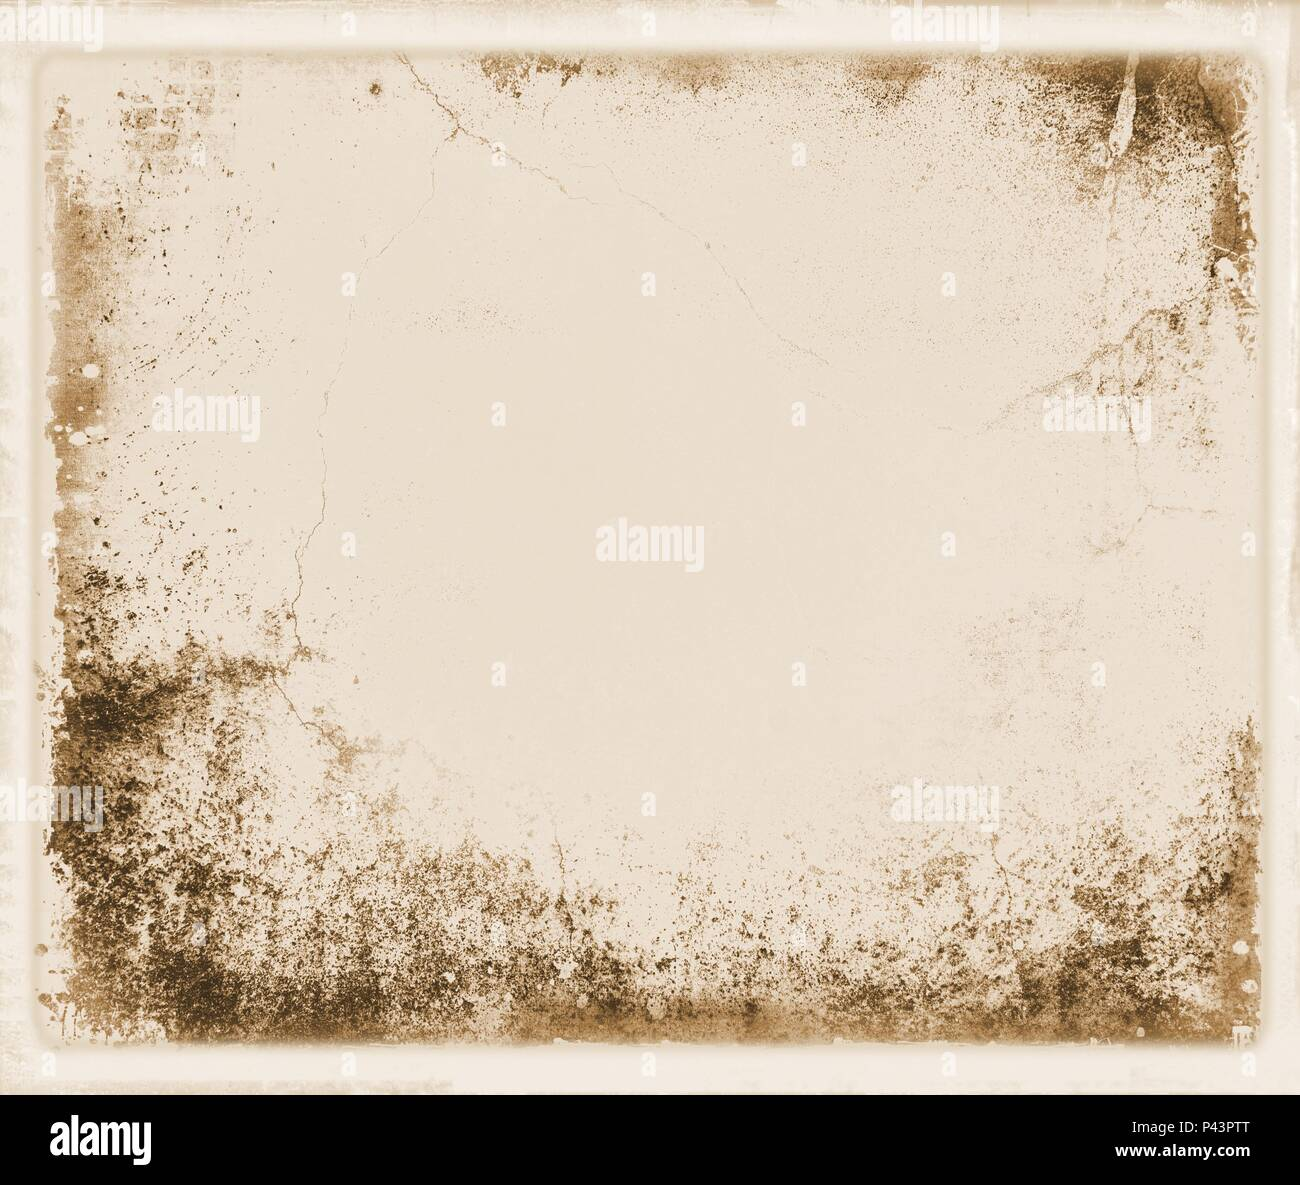 Vintage wall detail in retro style for texture or background. Sepia tones. - Stock Image